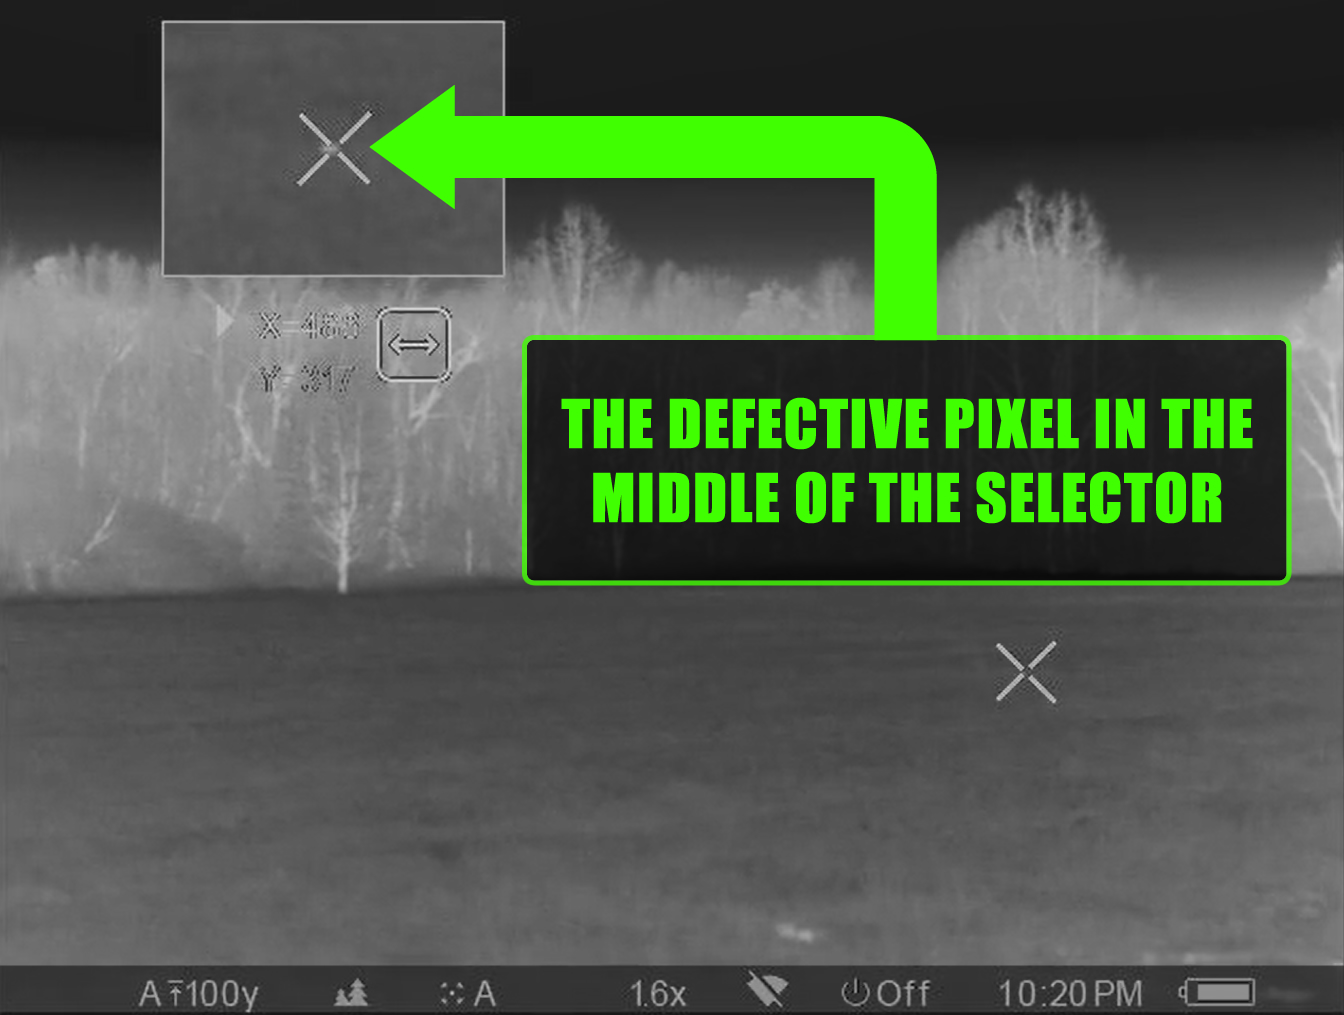 Screenshot of the defective pixel in the middle of the XY coordinate selector in a Pulsar Trail XP-50 thermal scope